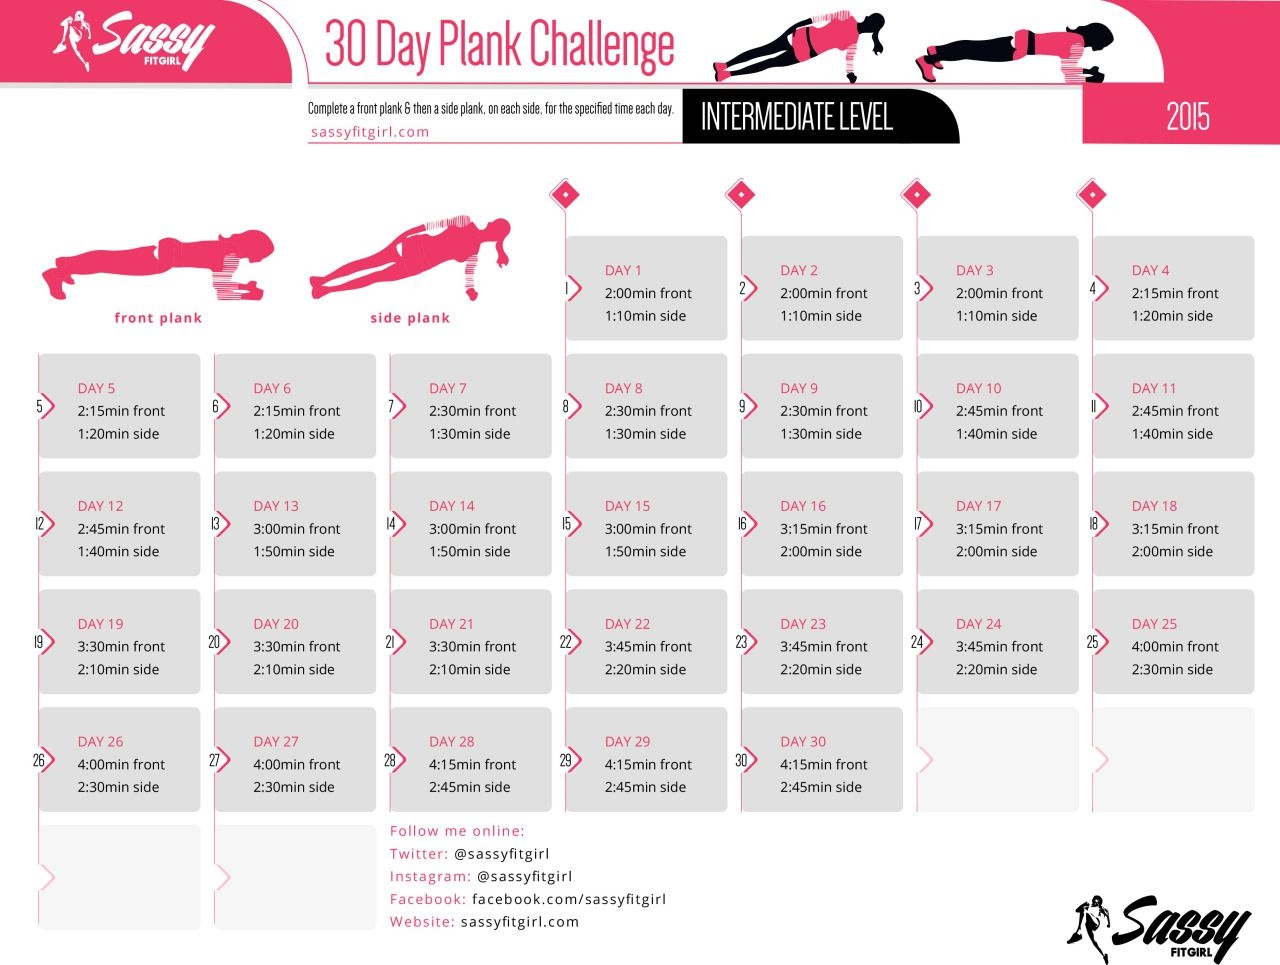 Sassy Fit Girl — 30 Day Plank Challenge - Intermediate Level